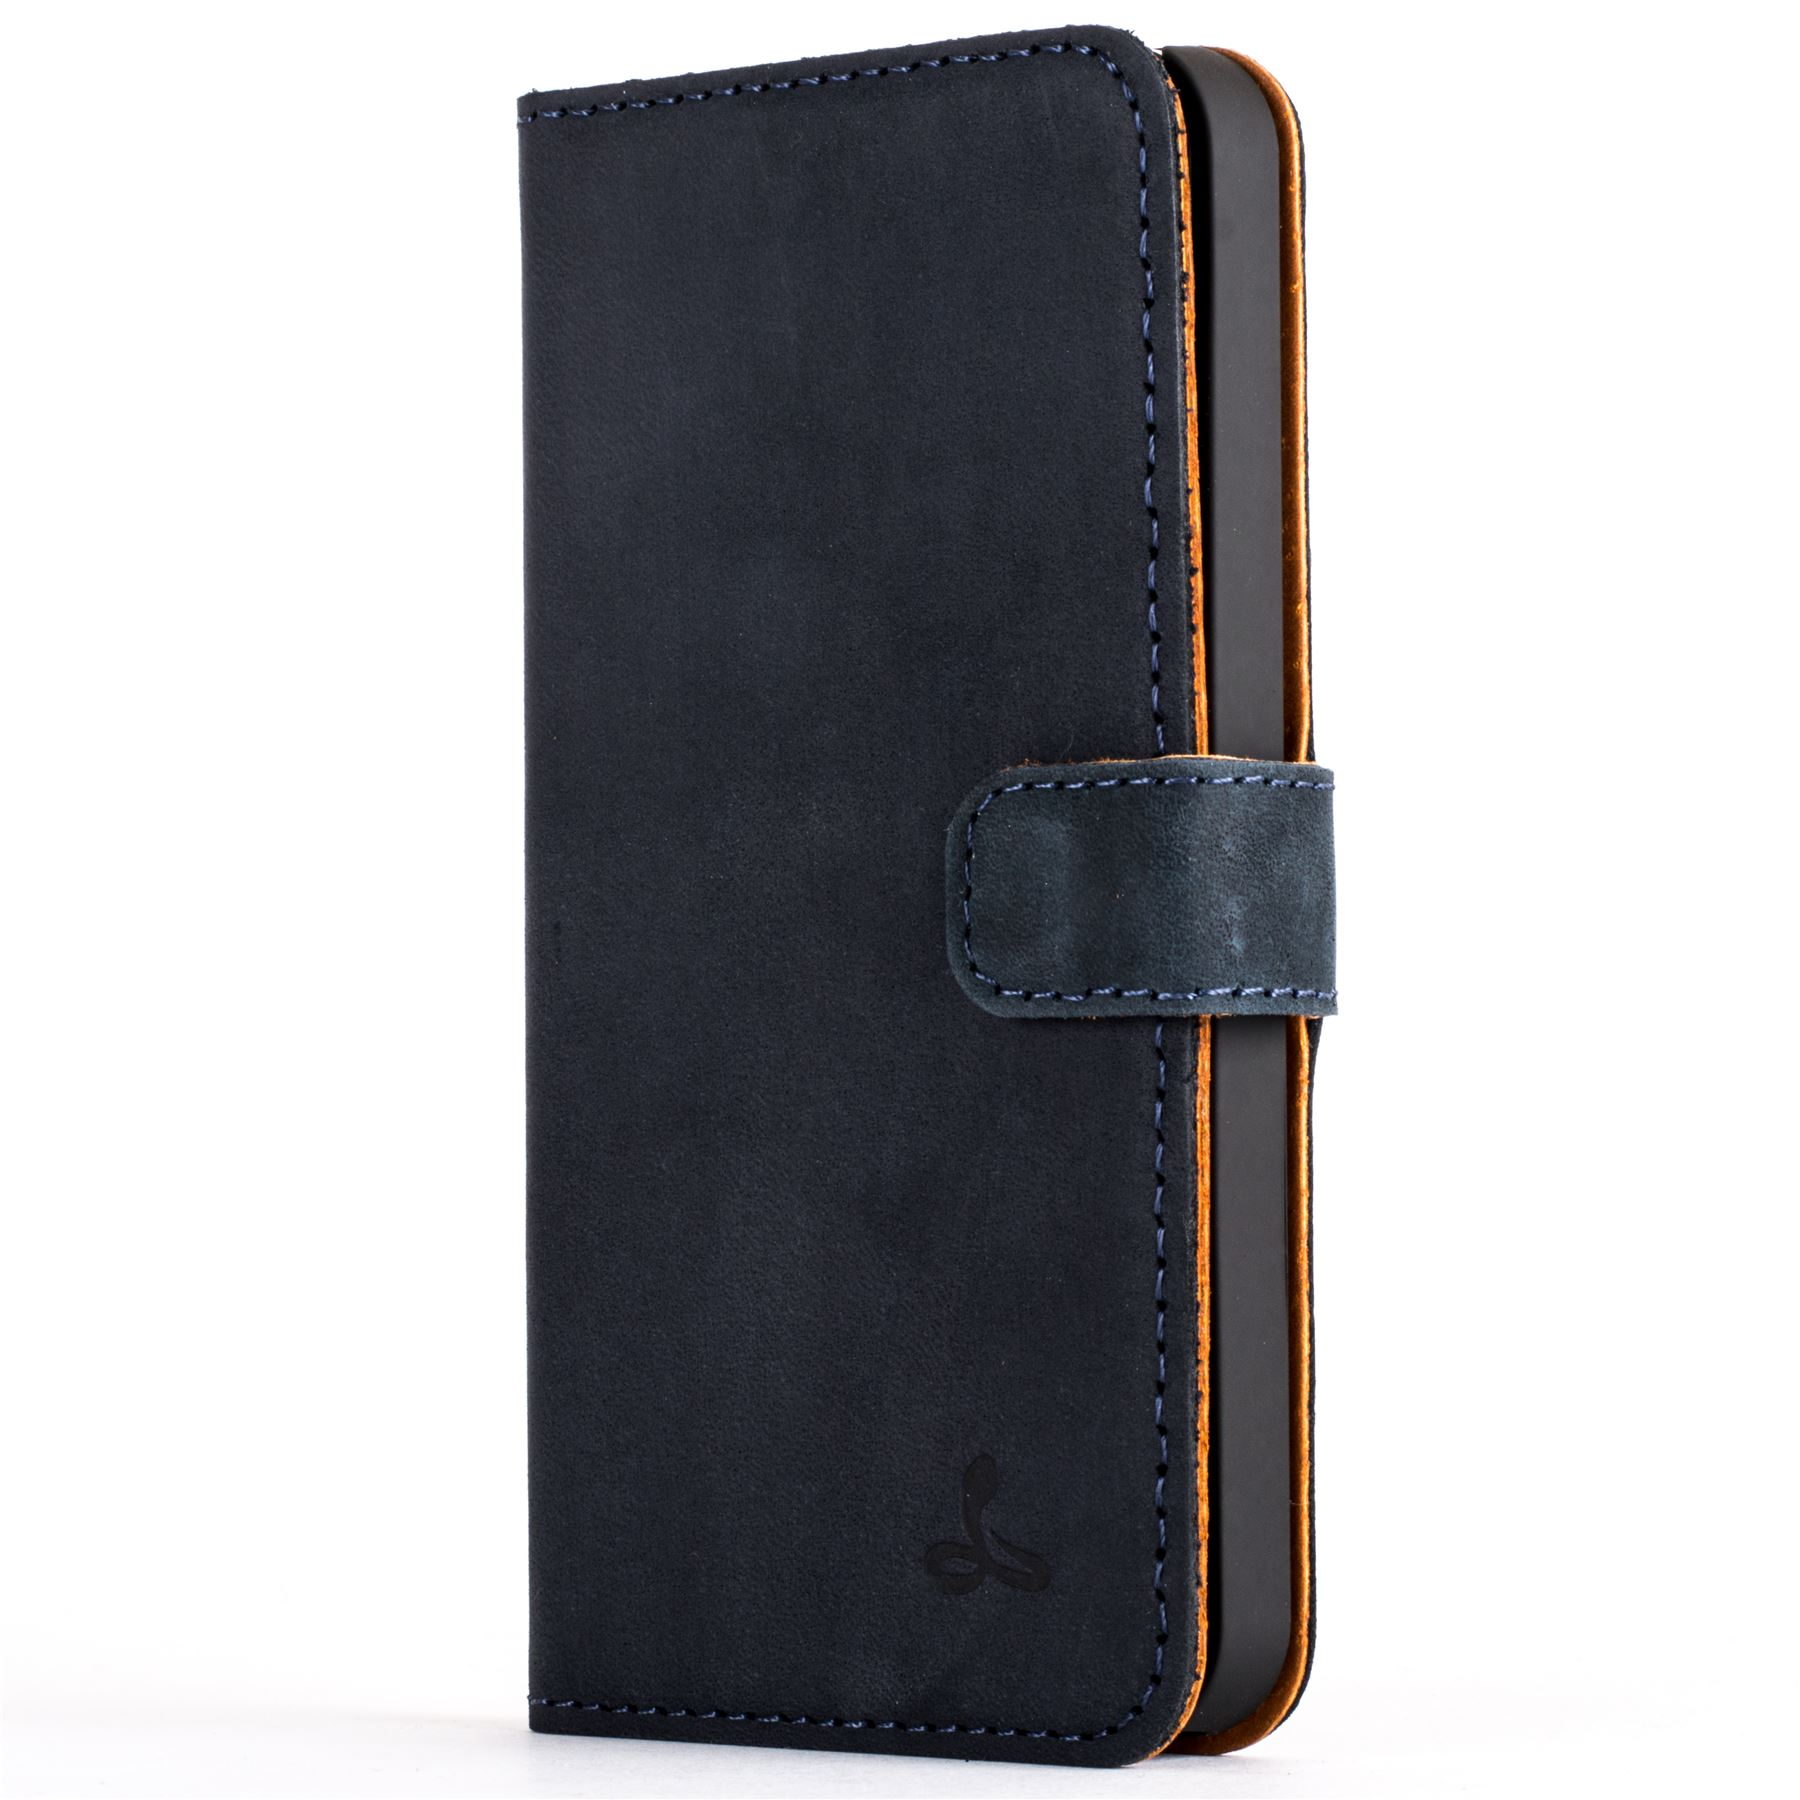 Snakehive vintage nubuck leather wallet case cover for apple iphone 5 5s se ebay - Iphone 5s leather case ...